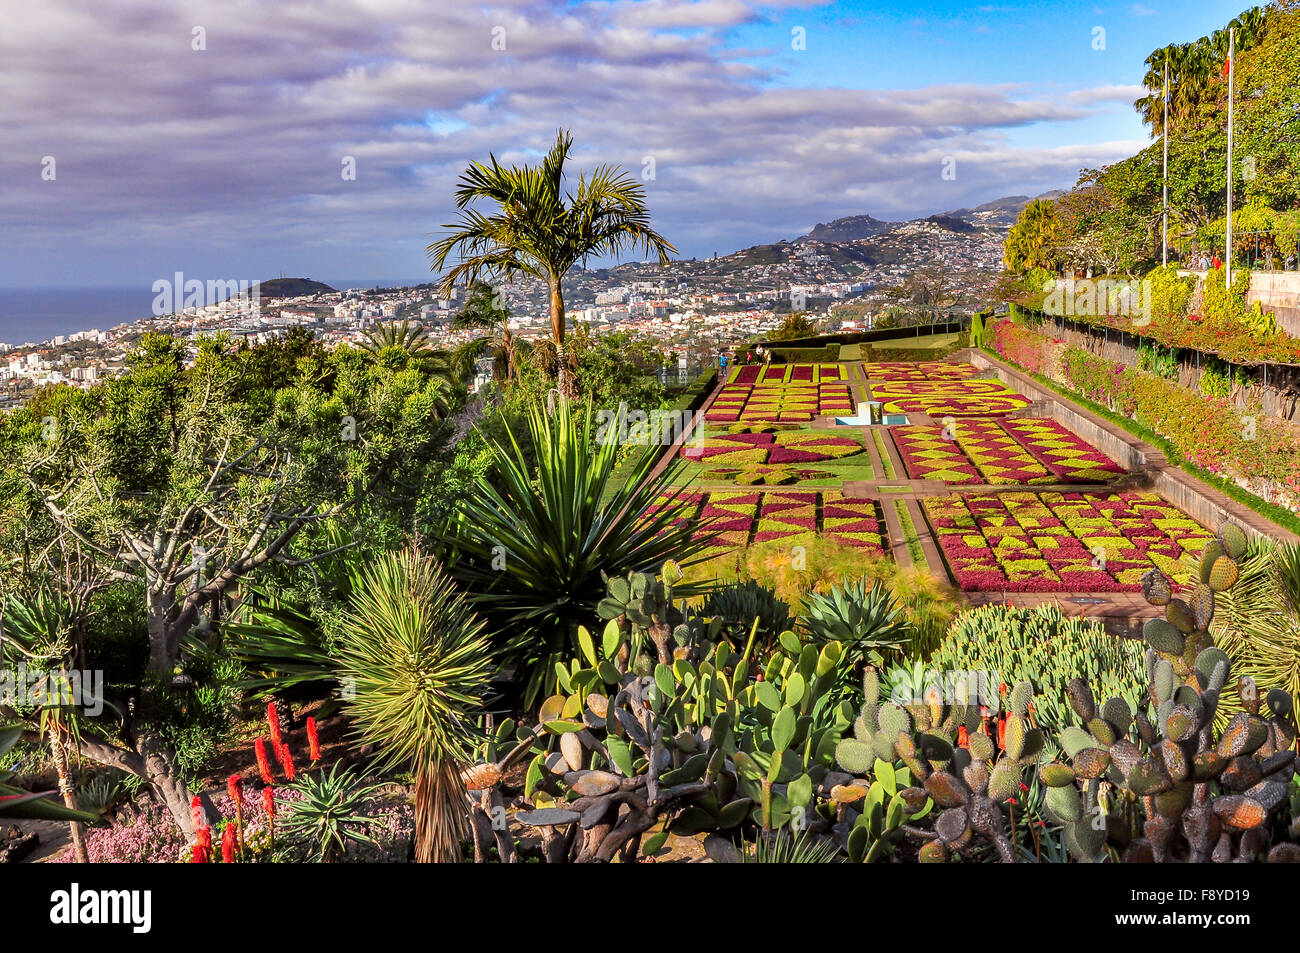 Botanical garden in Funchal and panoramic view of the city on a cloudy day, Madeira, Portugal - Stock Image